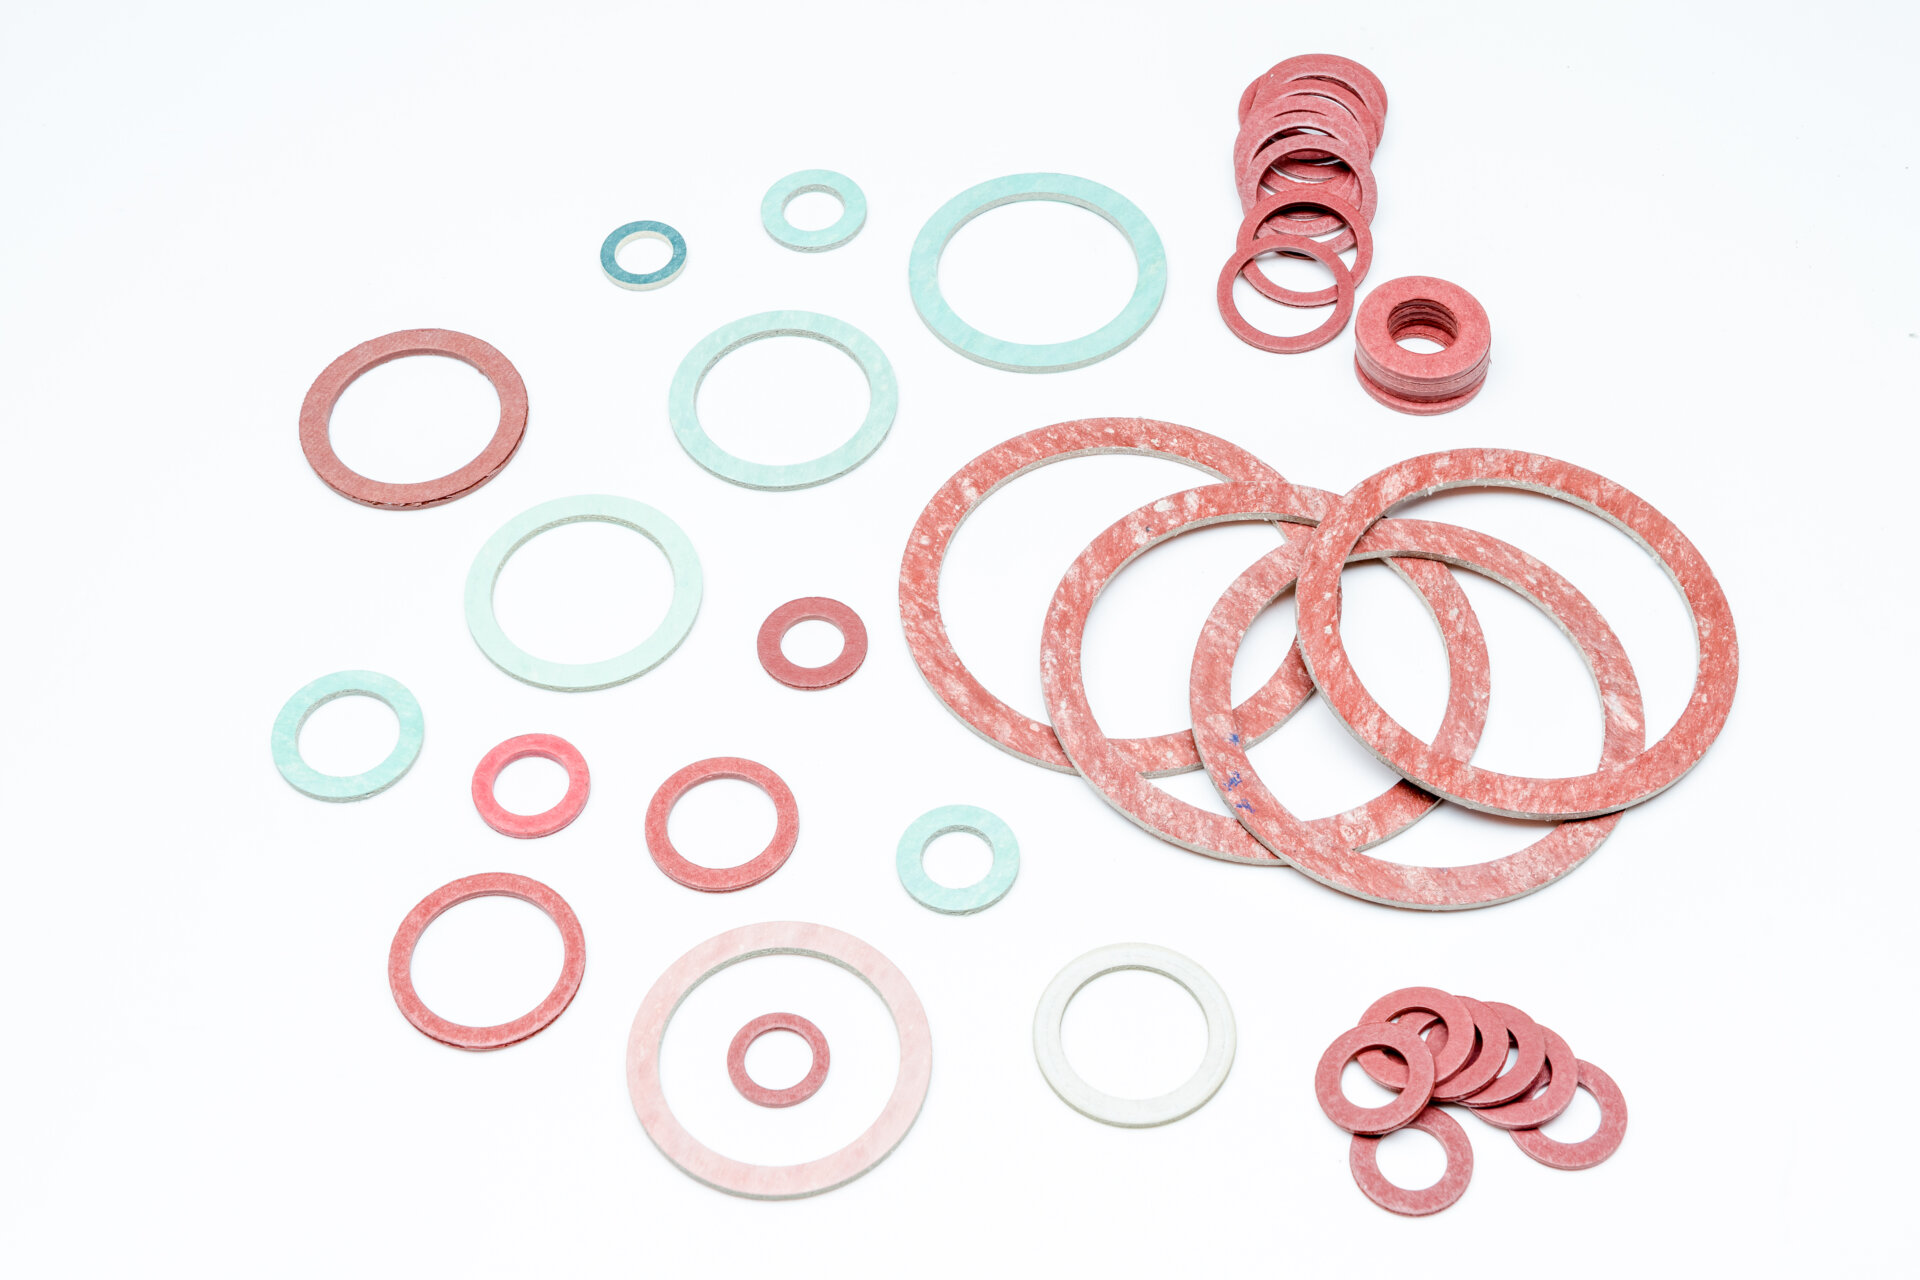 an group of gasket